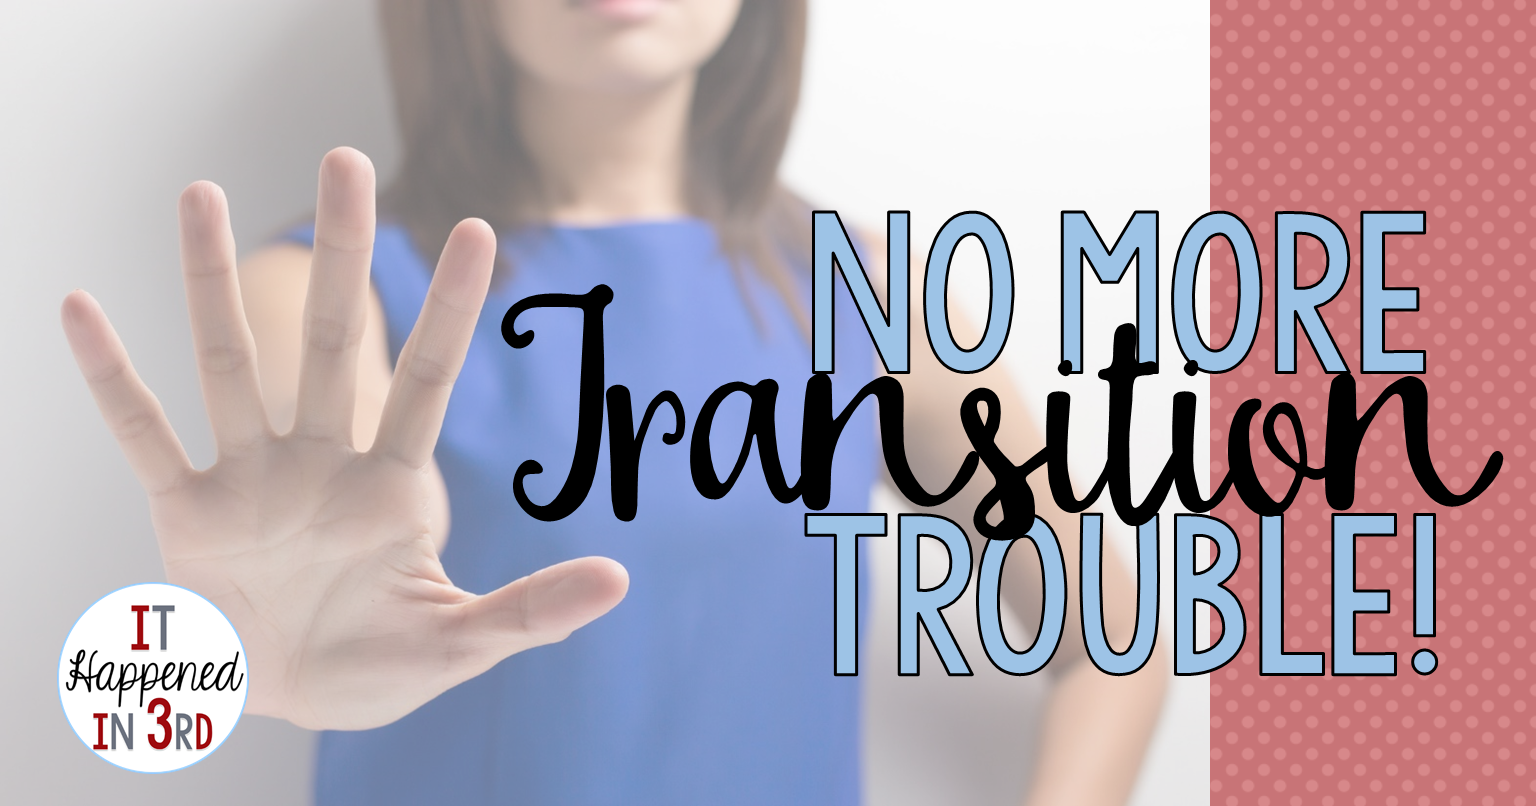 Do you struggle with transitions in the classroom? Ask yourself these 3 questions and before you know it, your students will be flowing smoothly from activity to activity!